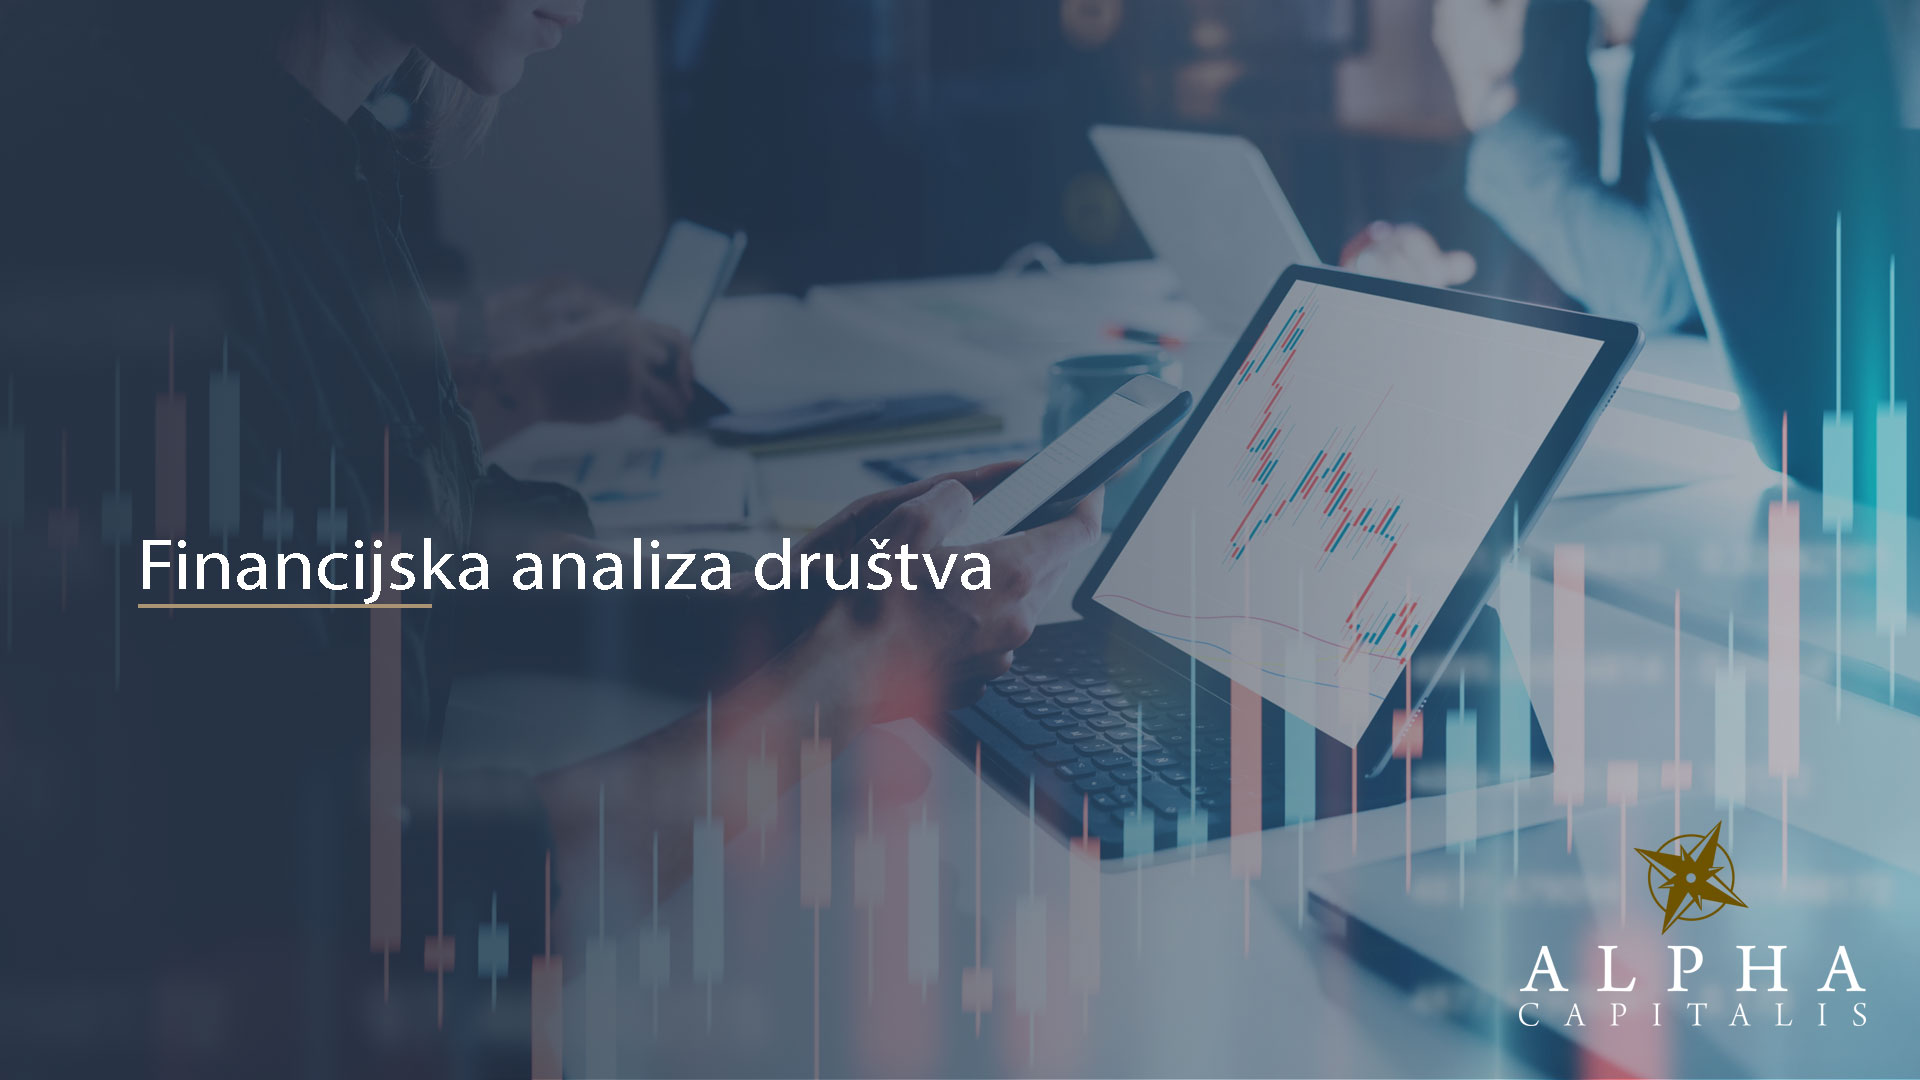 alpha-capitalis-financijska-analiza